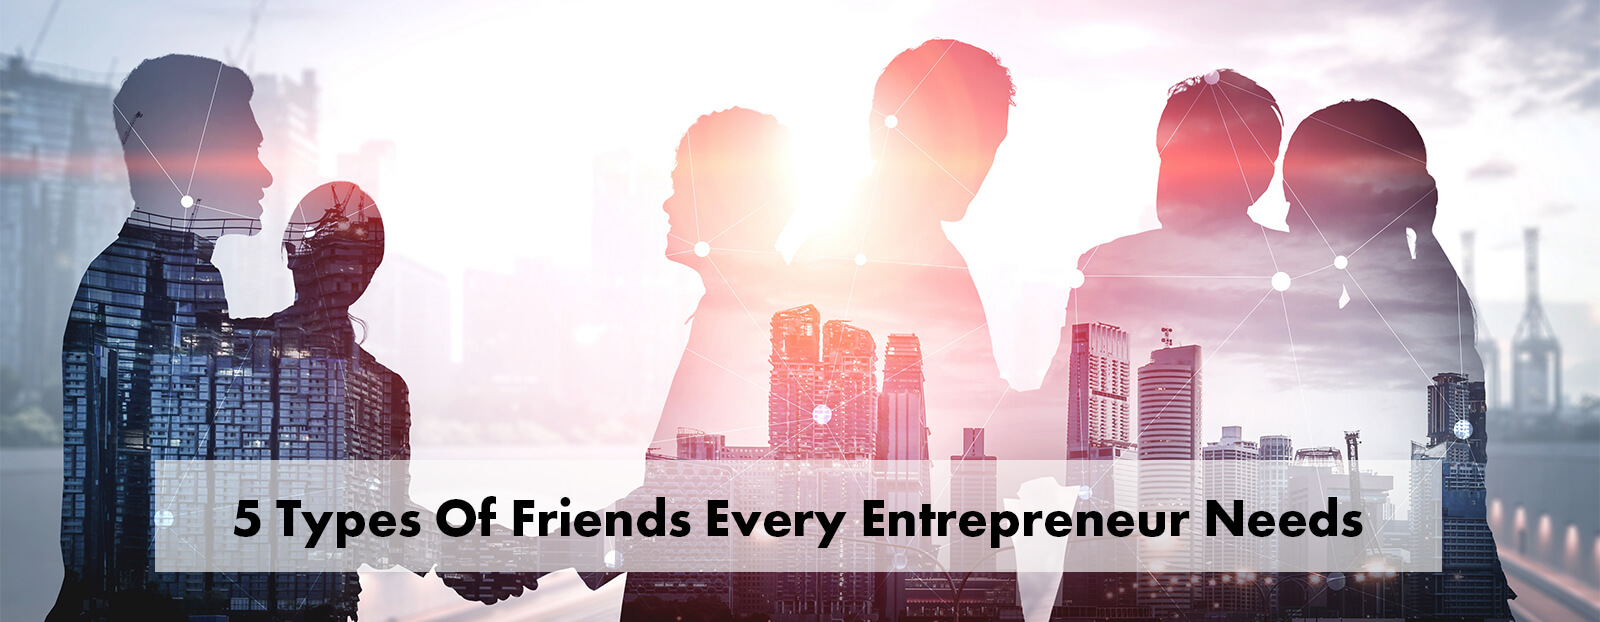 5 Types Of Friends Every Entrepreneur Needs